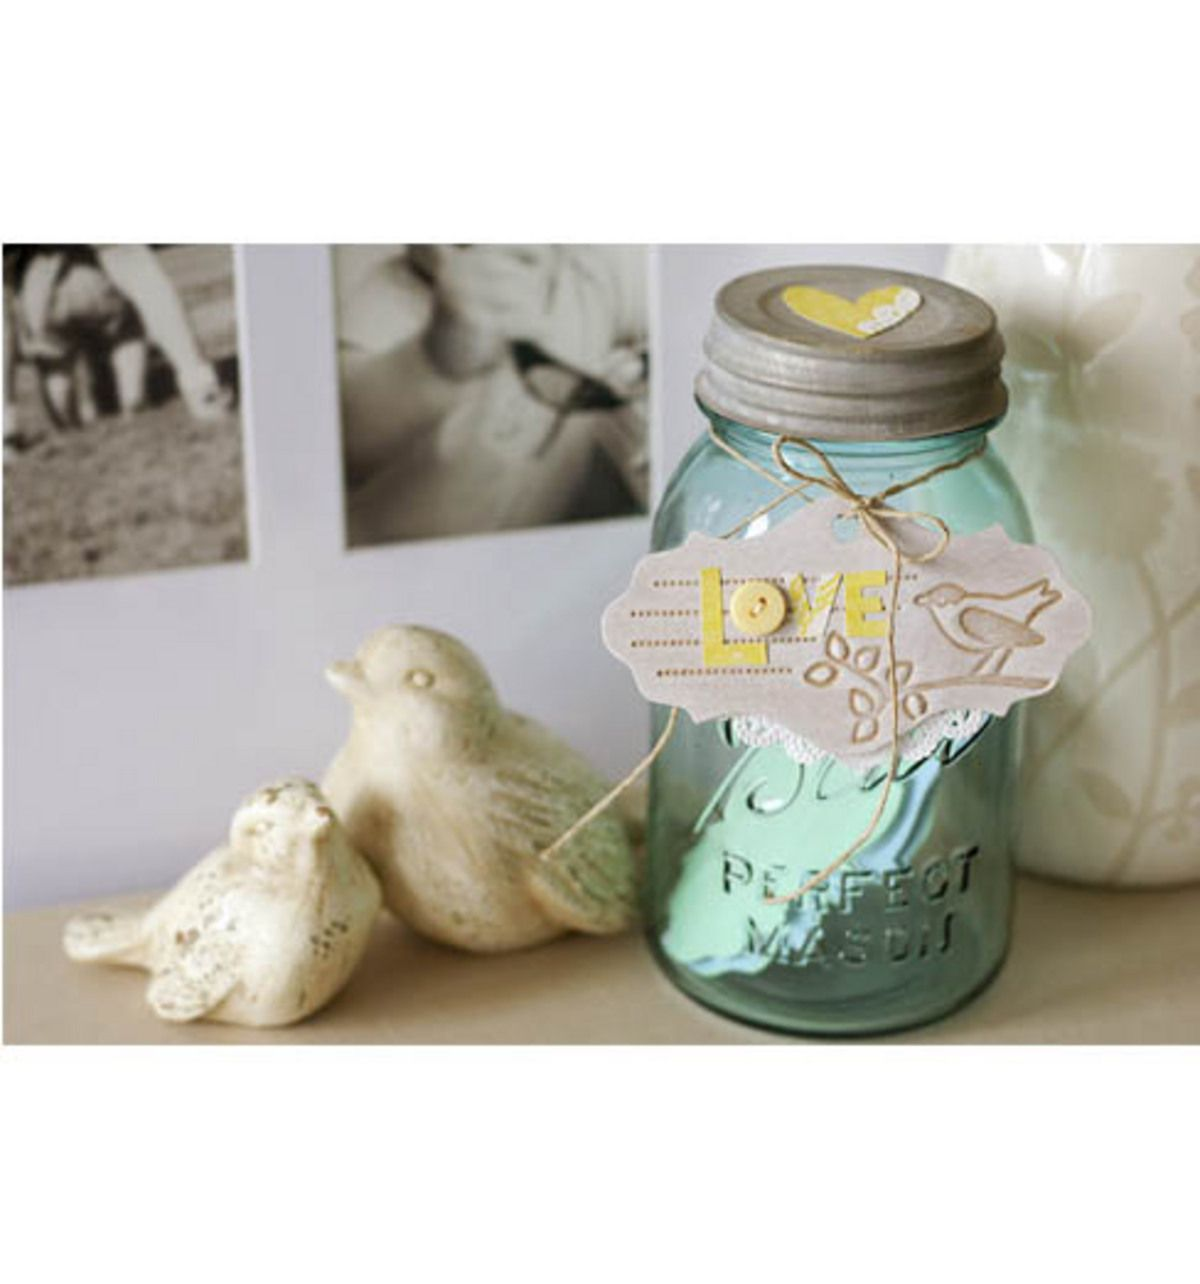 Store your love notes on Valentine's Day in a Ball Jar!